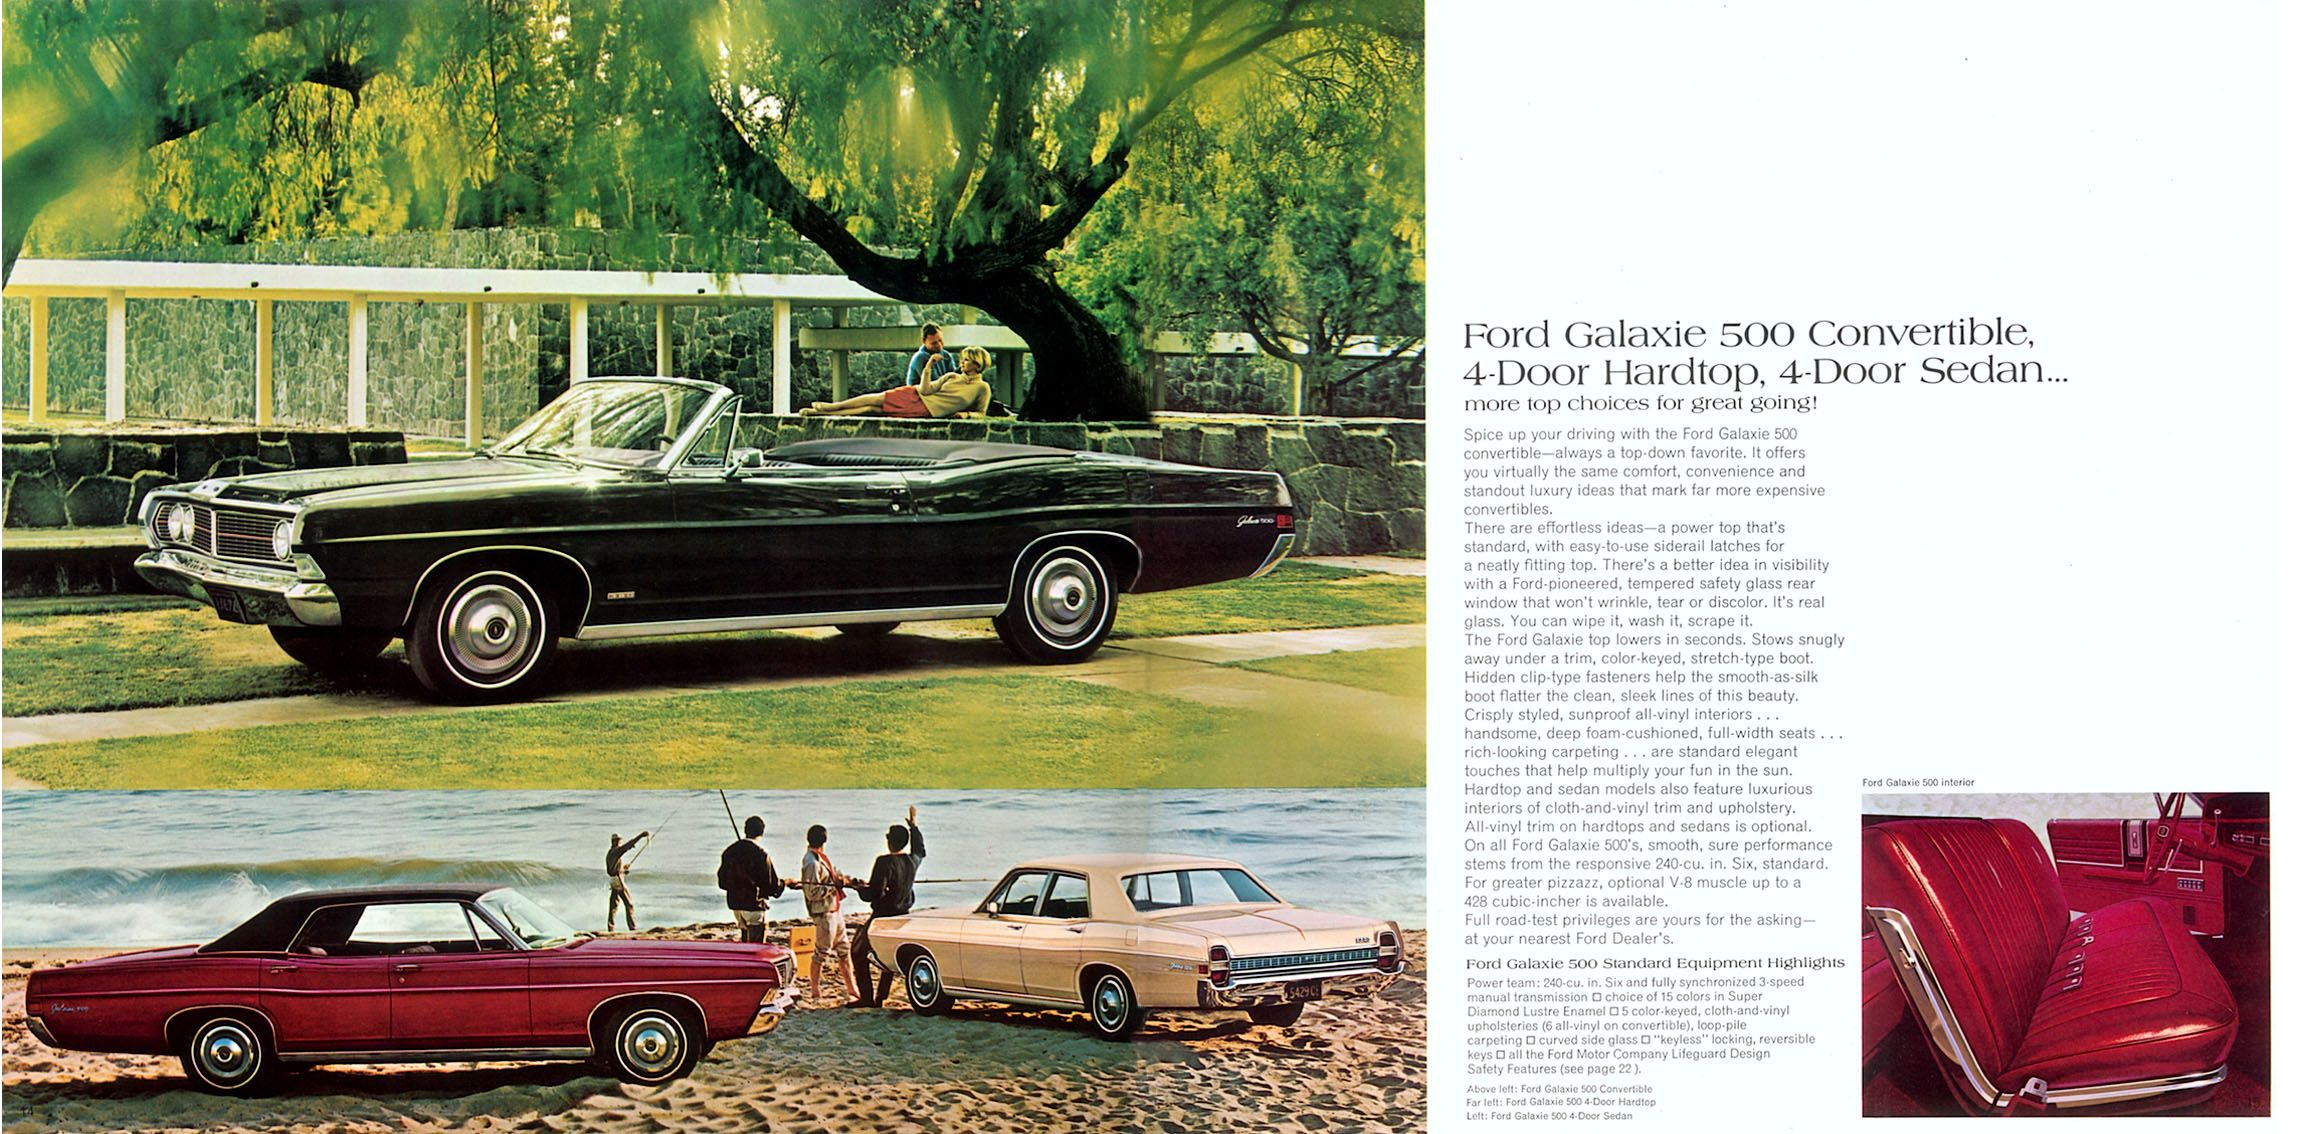 Country Squire Wagon 1969 Ford LTD Galaxie 500 Deluxe Sales Brochure Catalog